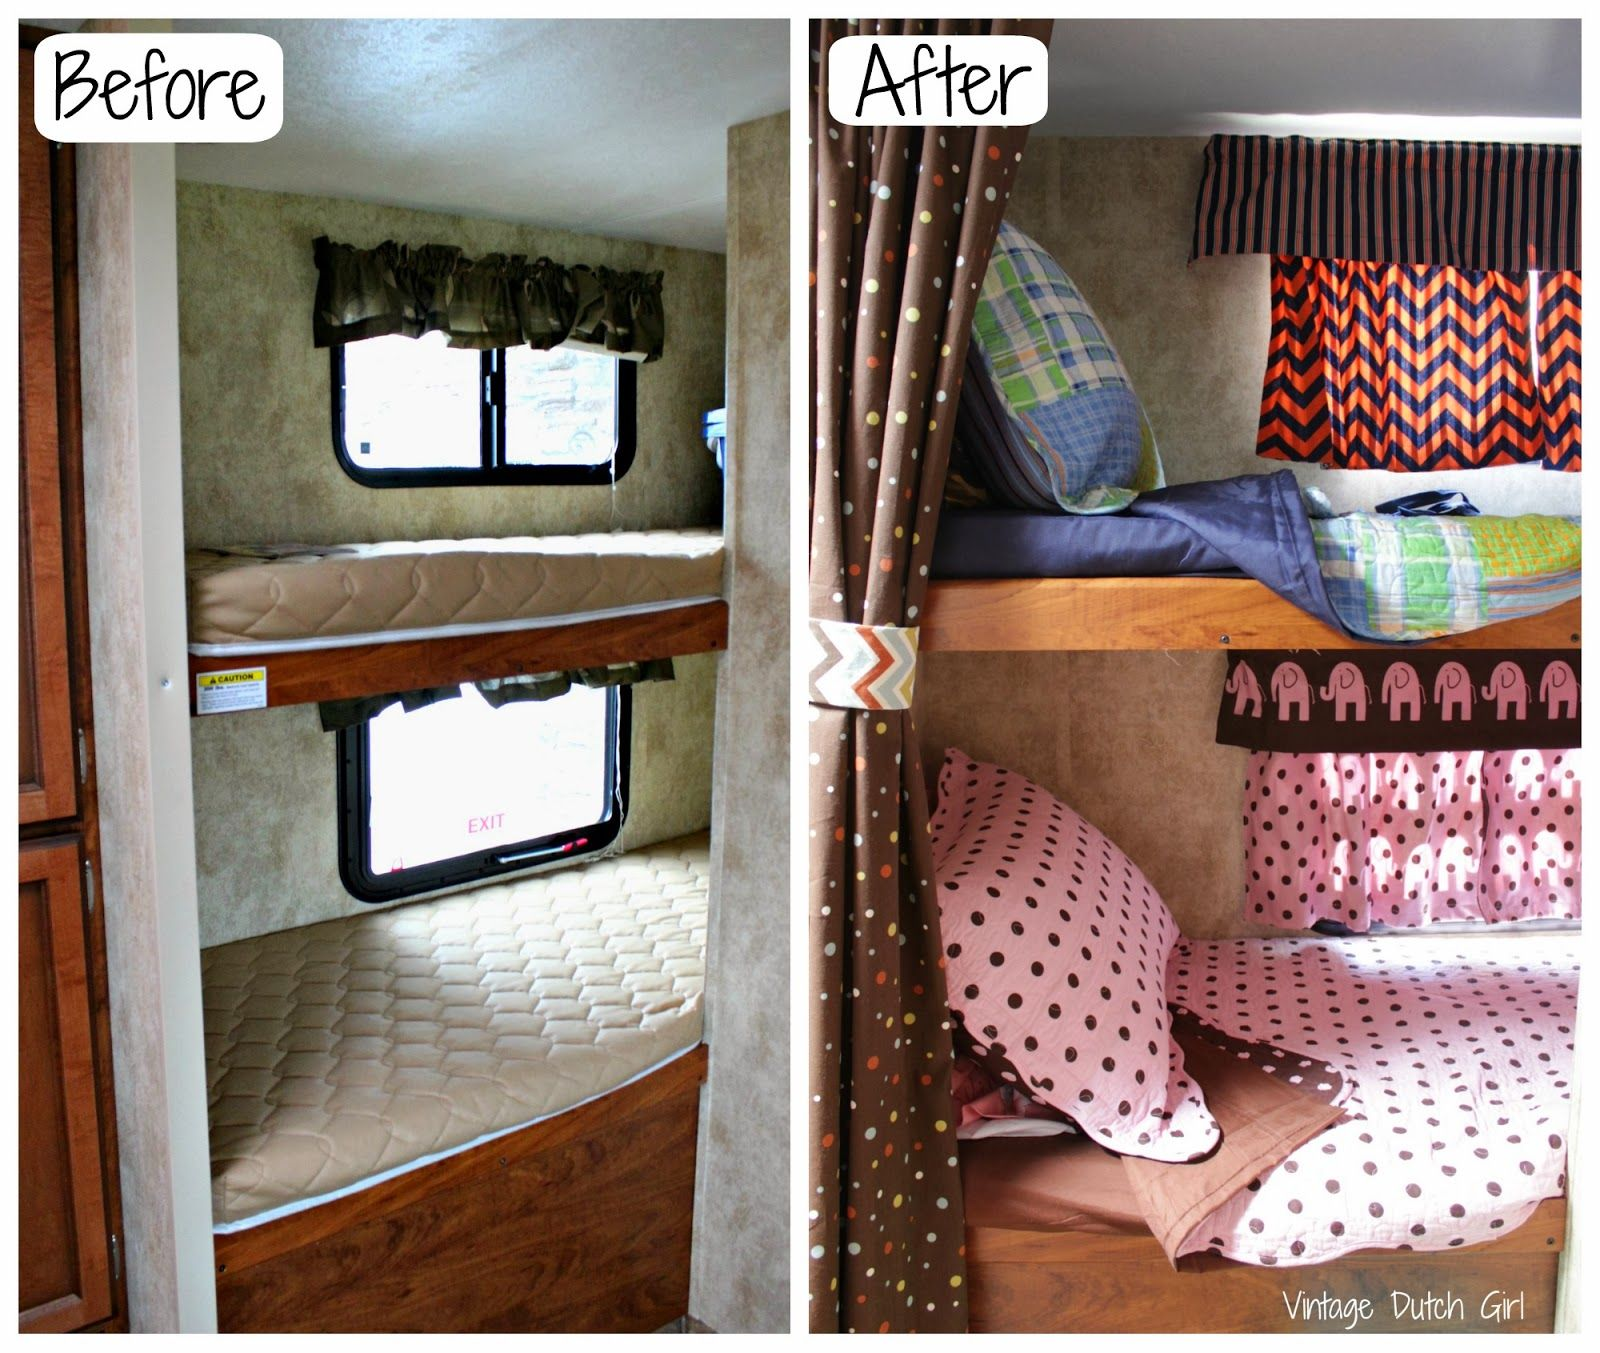 Image of: Travel Trailers with Bunk Beds Photos